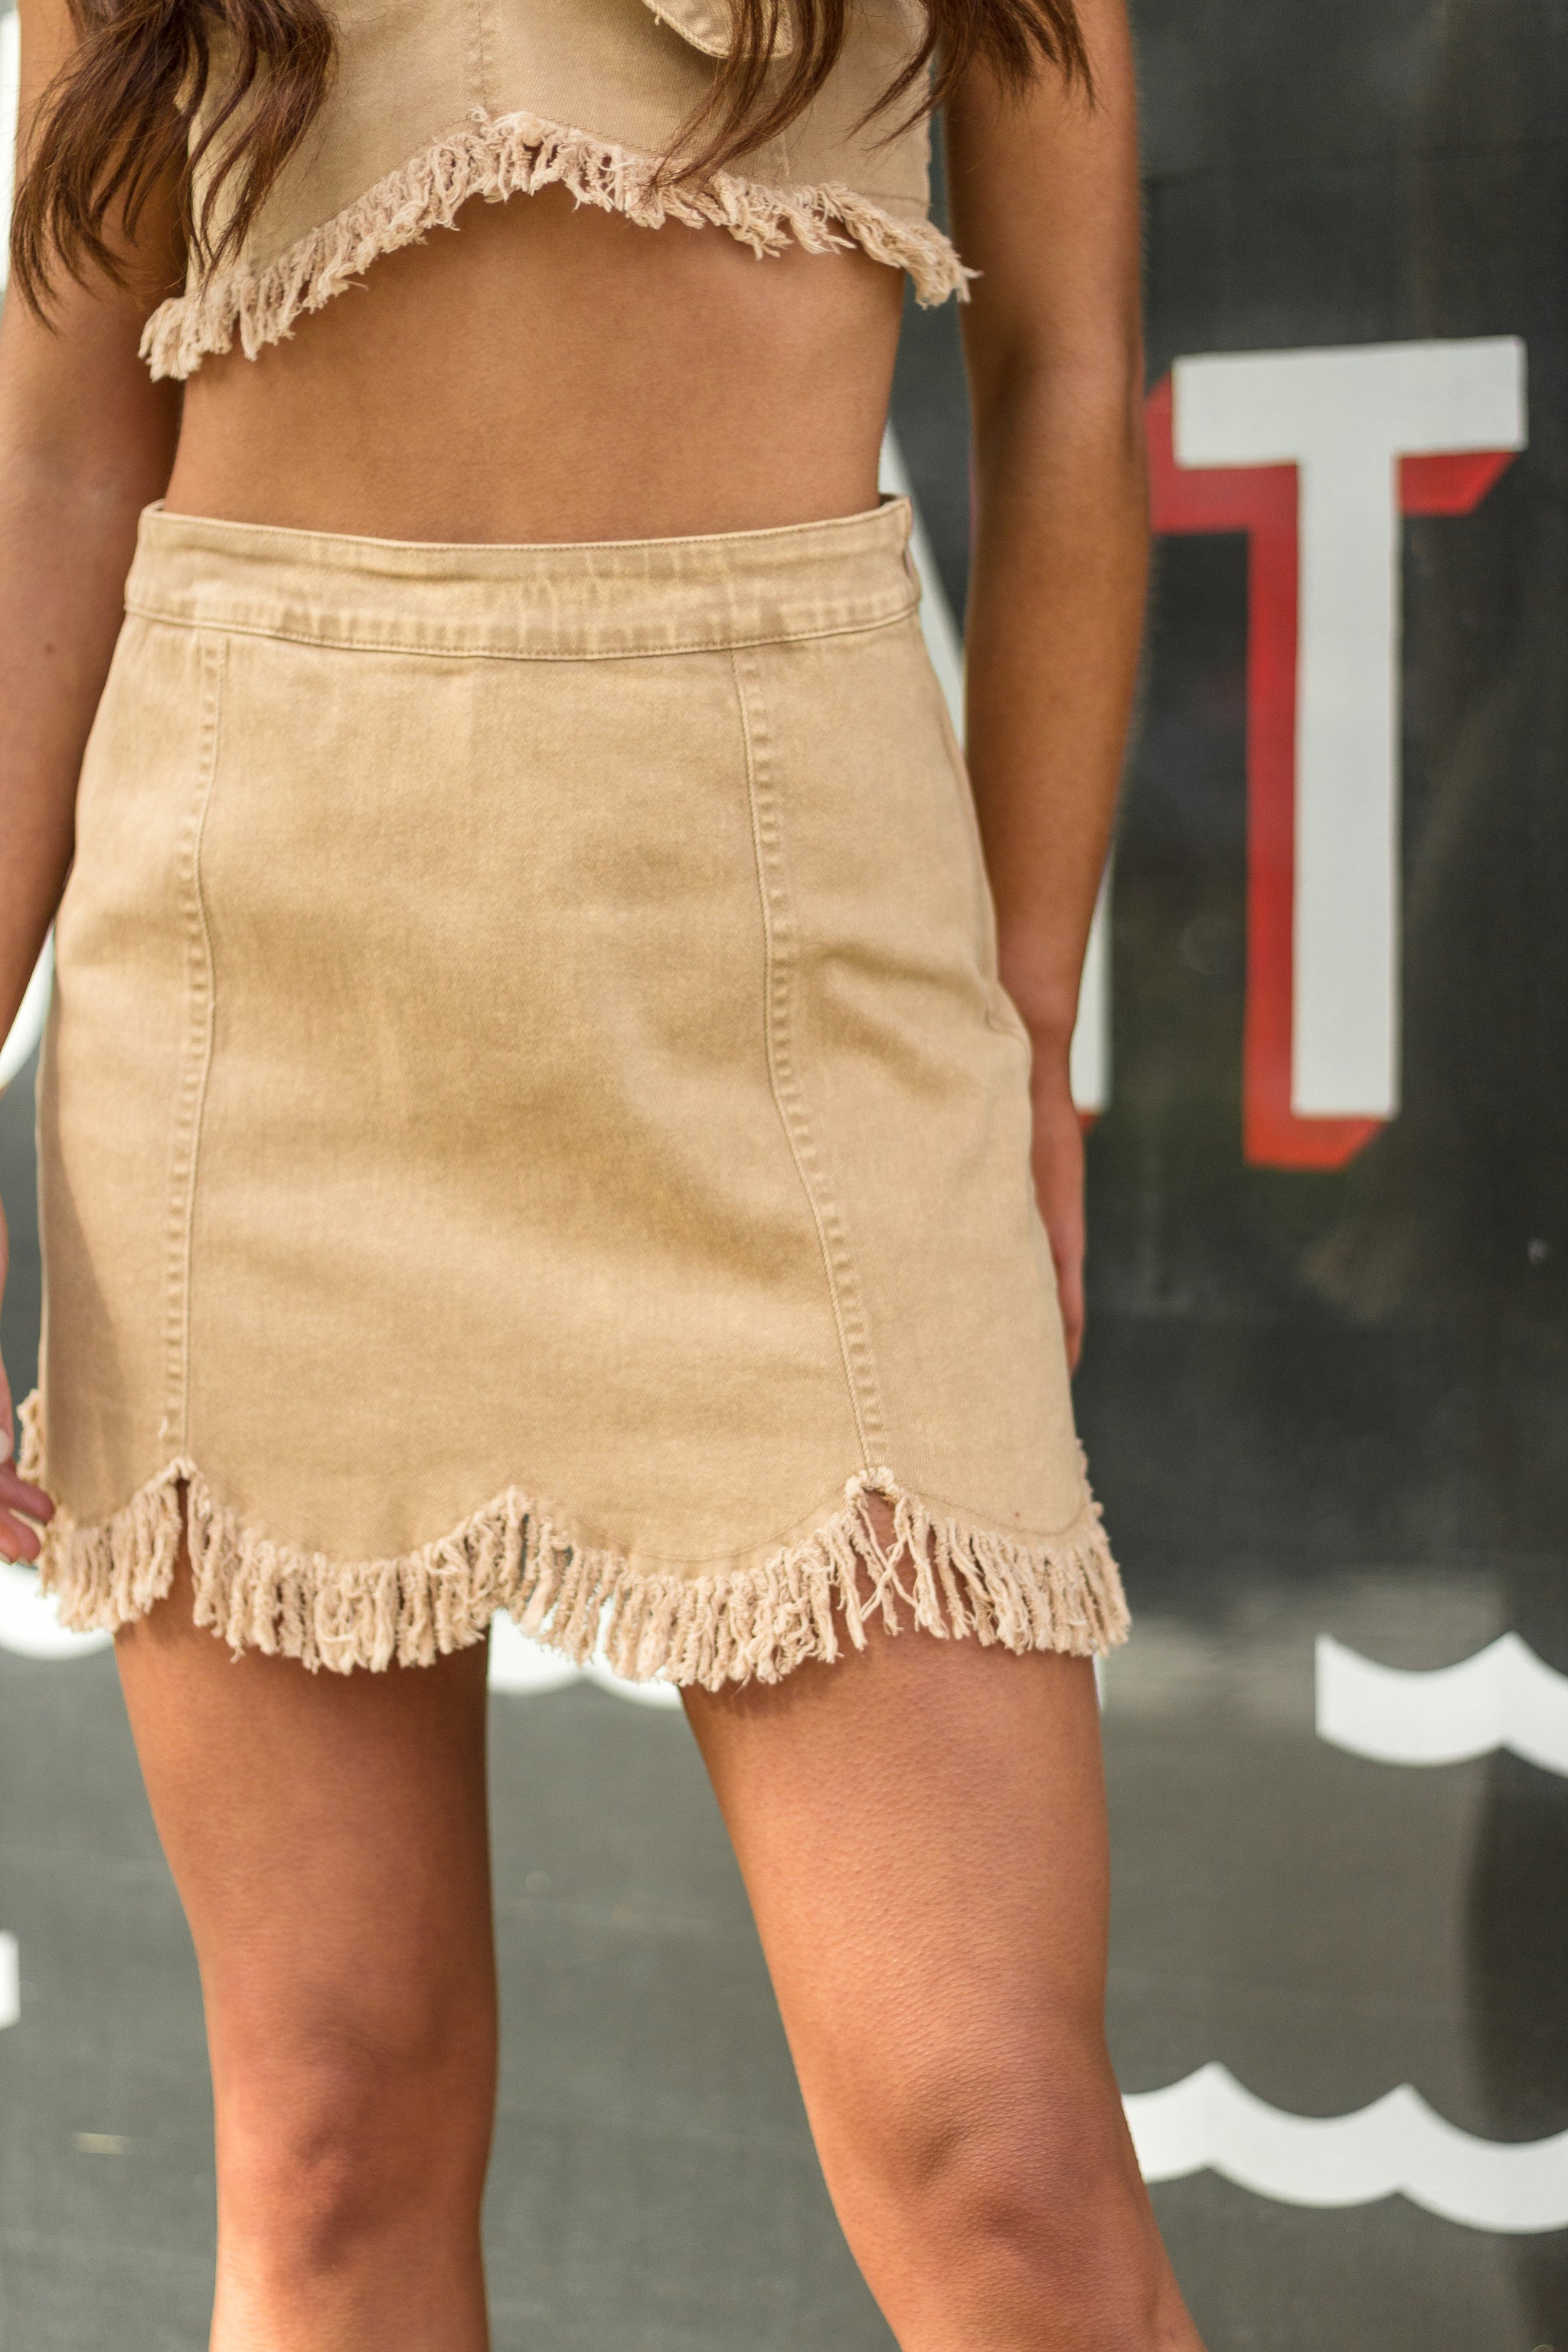 This trendy skirt has a fitted waistband that leads down a paneled and hip-hugging mini skirt with a scalloped hem with small tassel fringes dangling at the bottom hem.